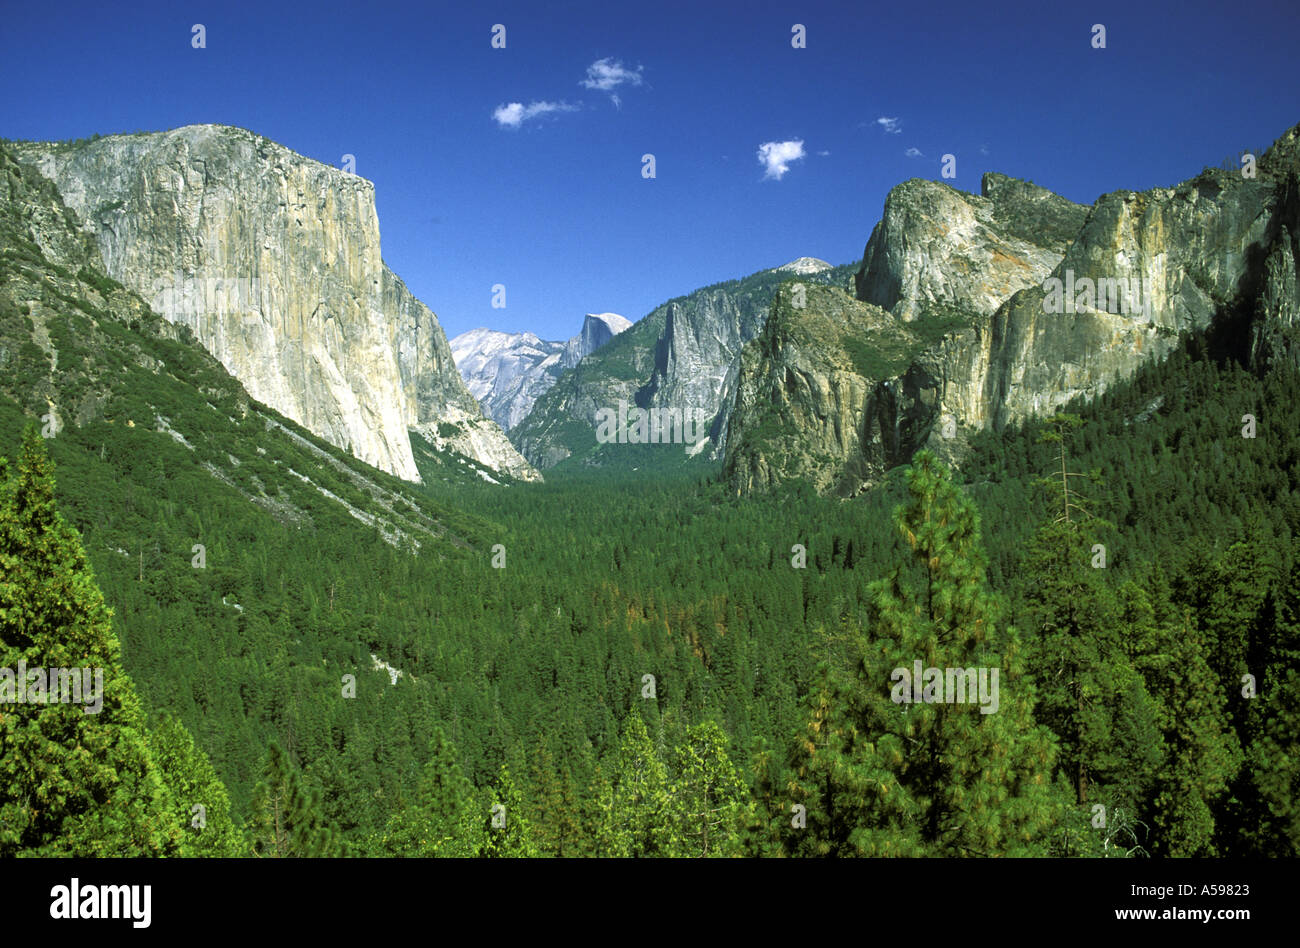 VIEW OF THE MERCED VALLEY WITH HALF DOME IN THE DISTANCE FROM TUNNEL VIEW YOSEMITE NATIONAL PARK CALIFORNIA USA - Stock Image